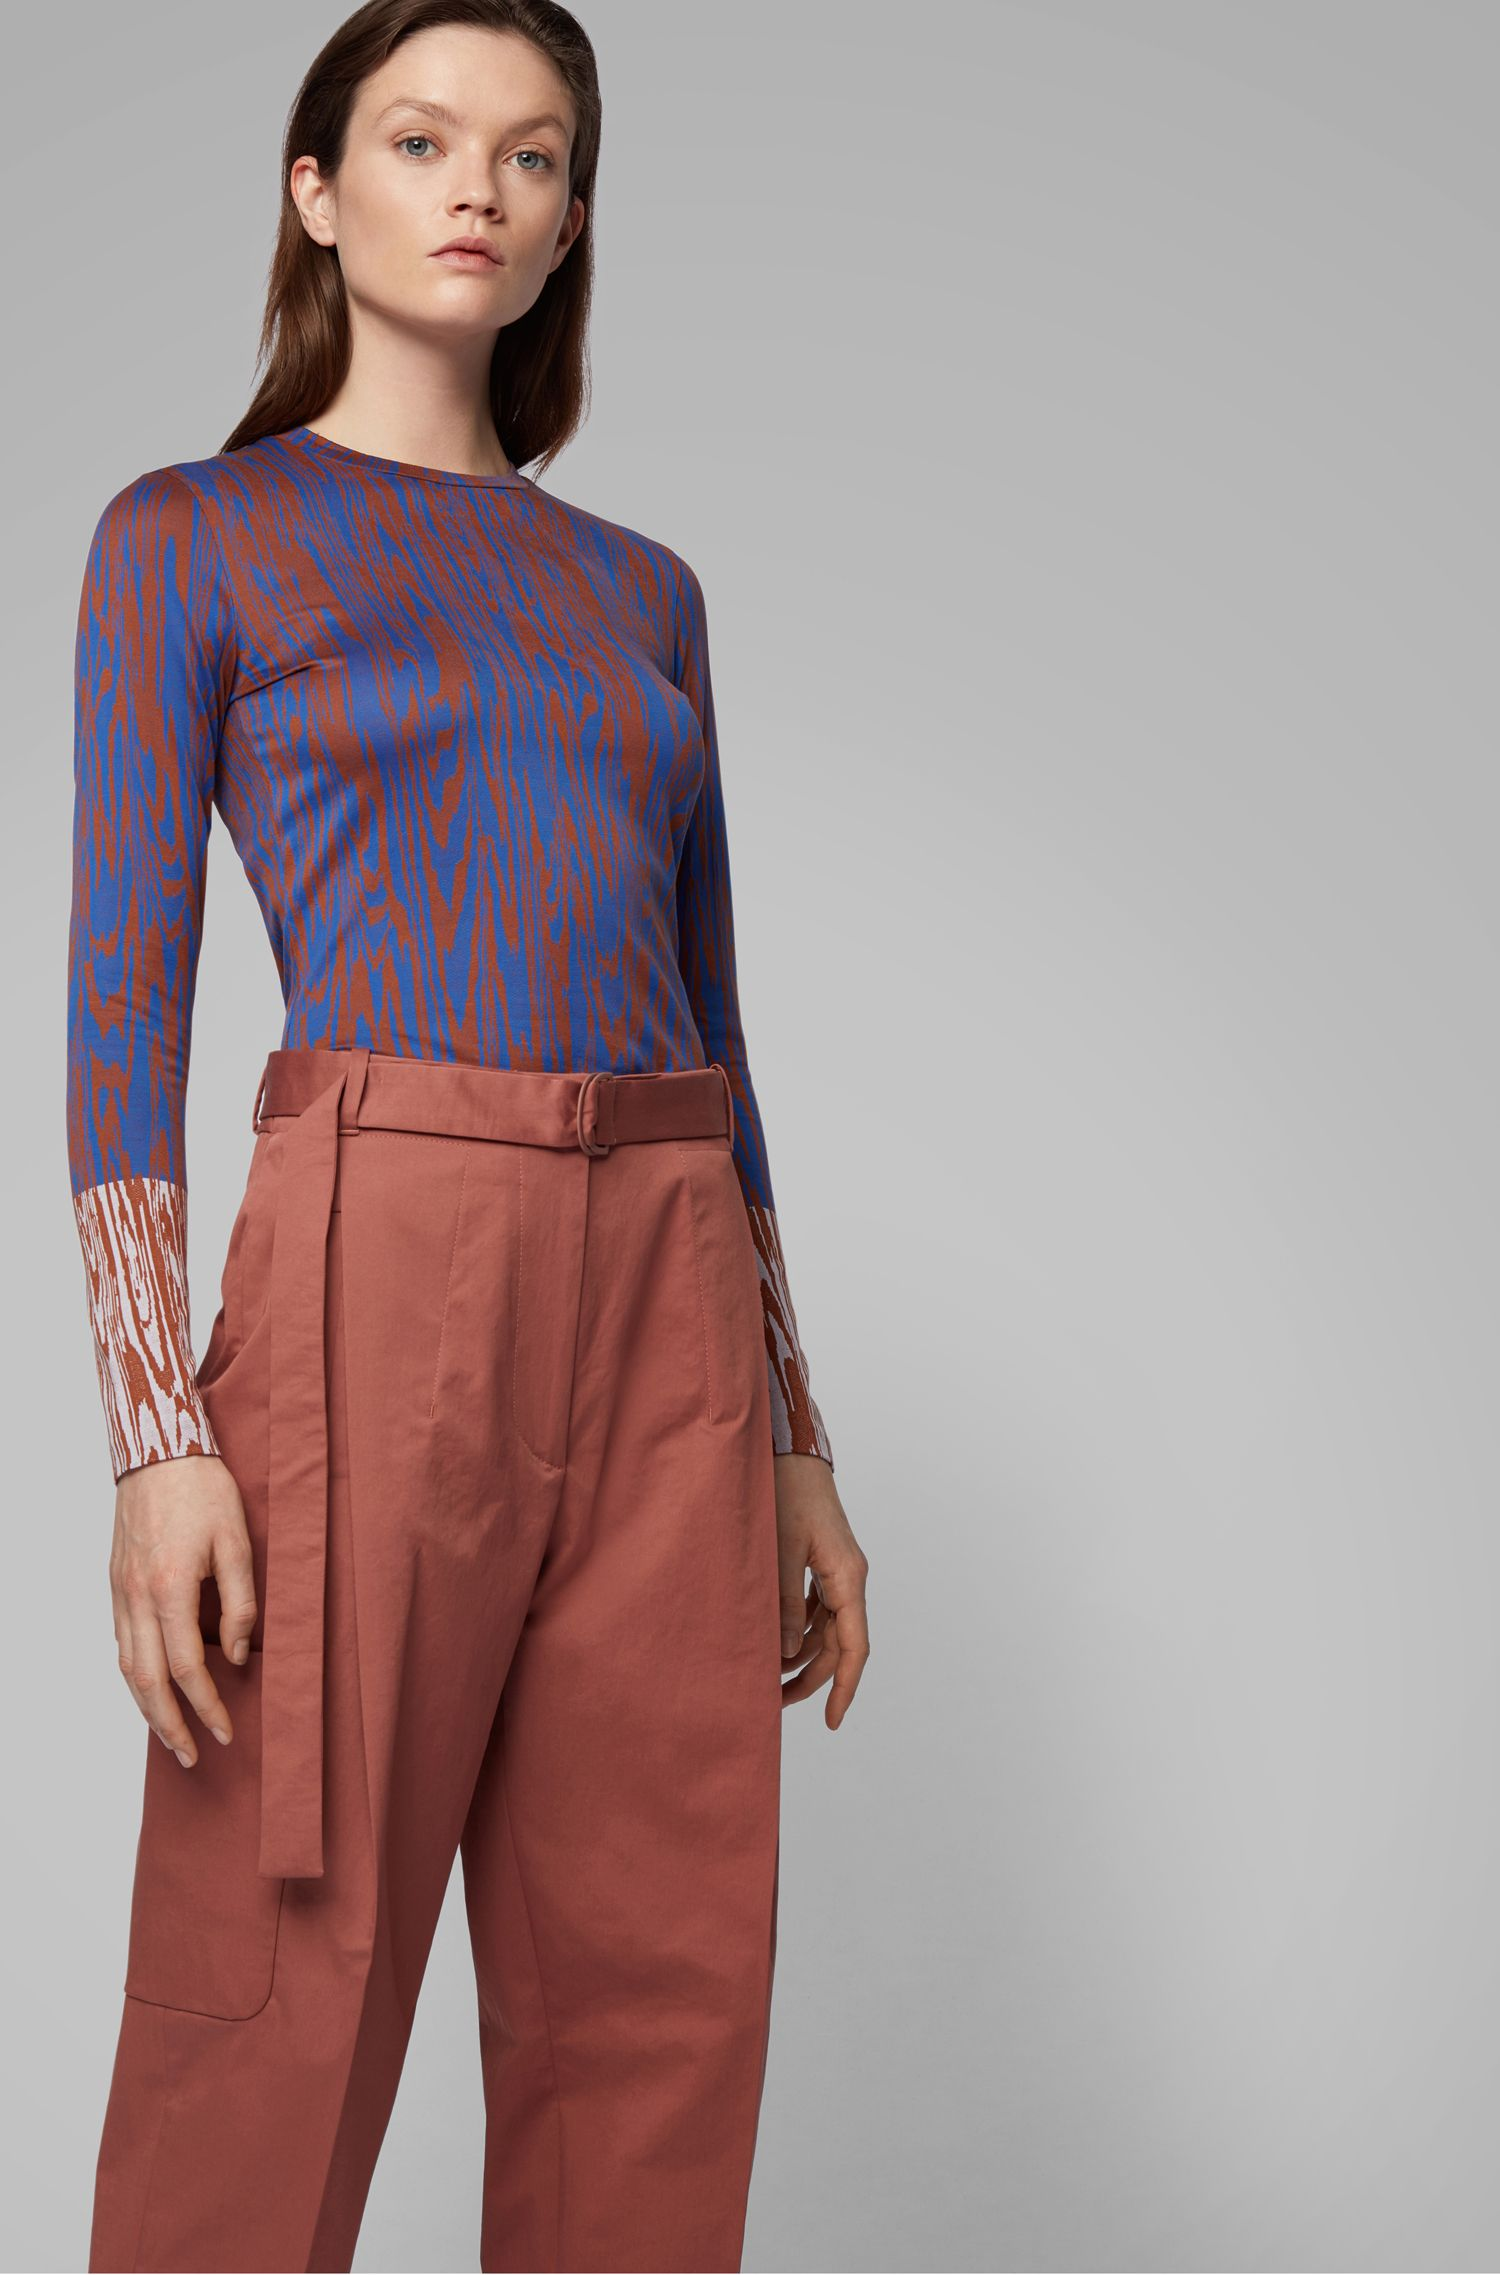 Slim-fit jersey top with all-over pattern, Patterned